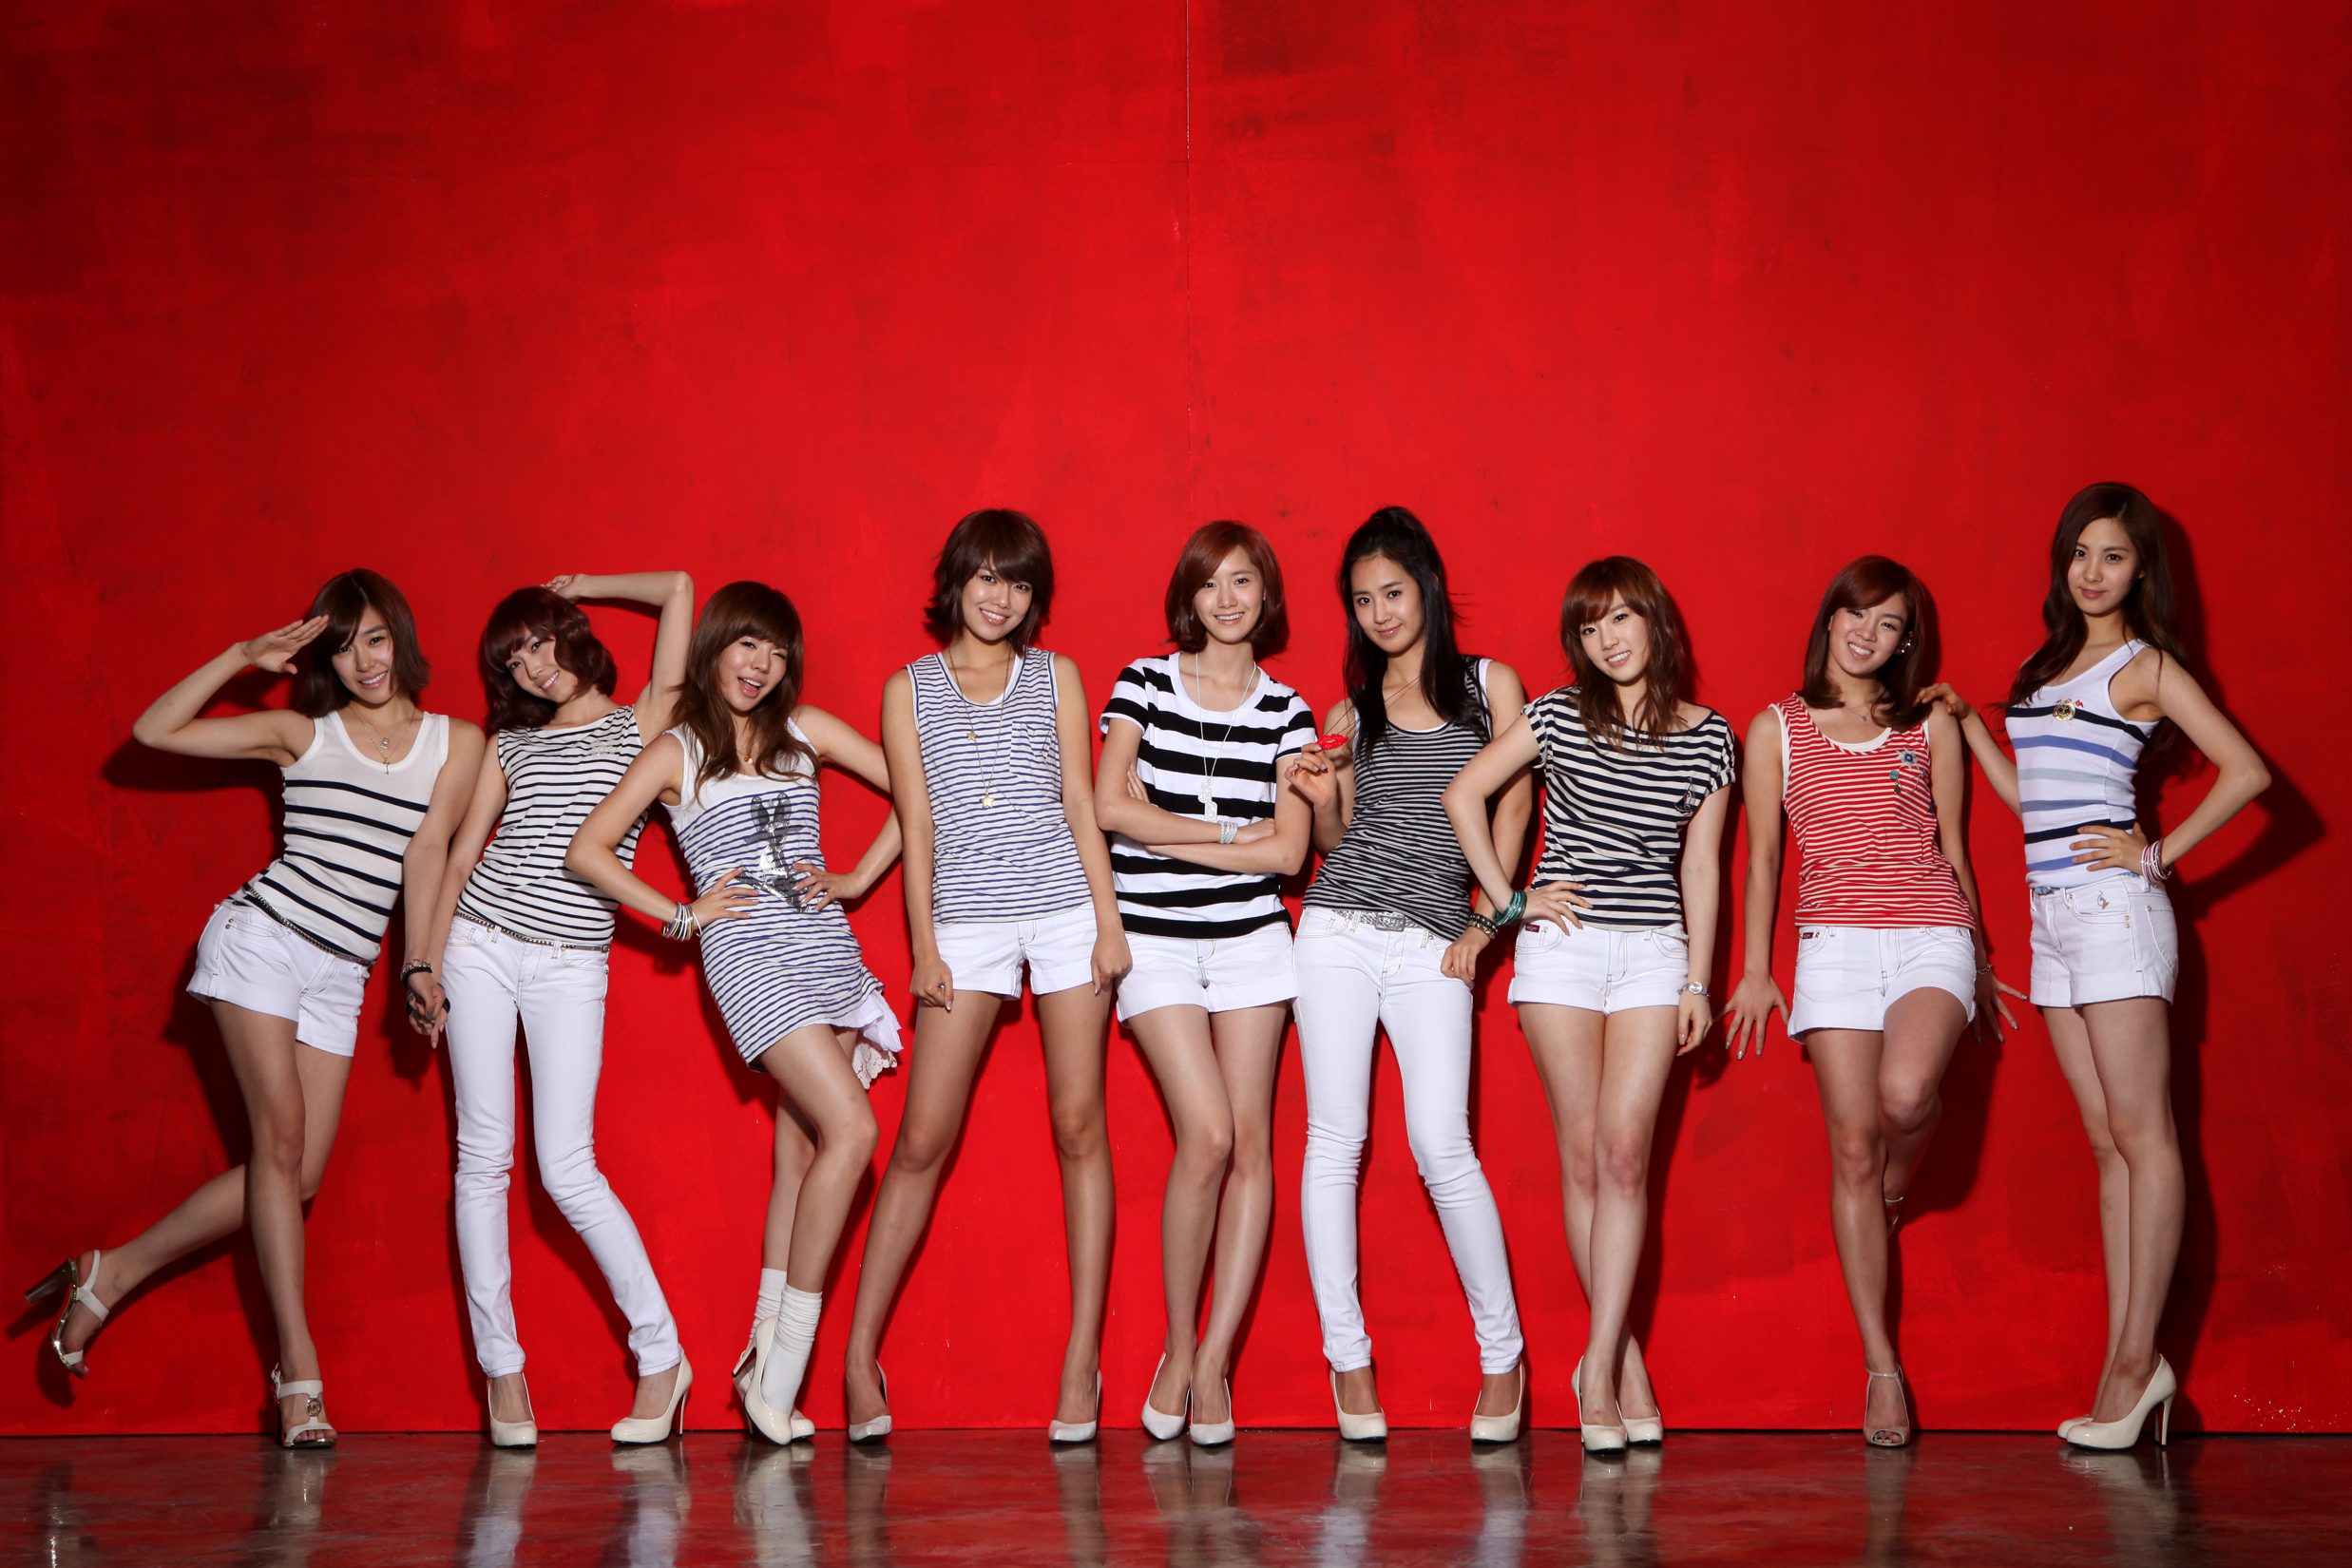 http://snsdkorean.files.wordpress.com/2011/08/snsd__s_red_wallie_org__ver__by_o0someday0o.jpg